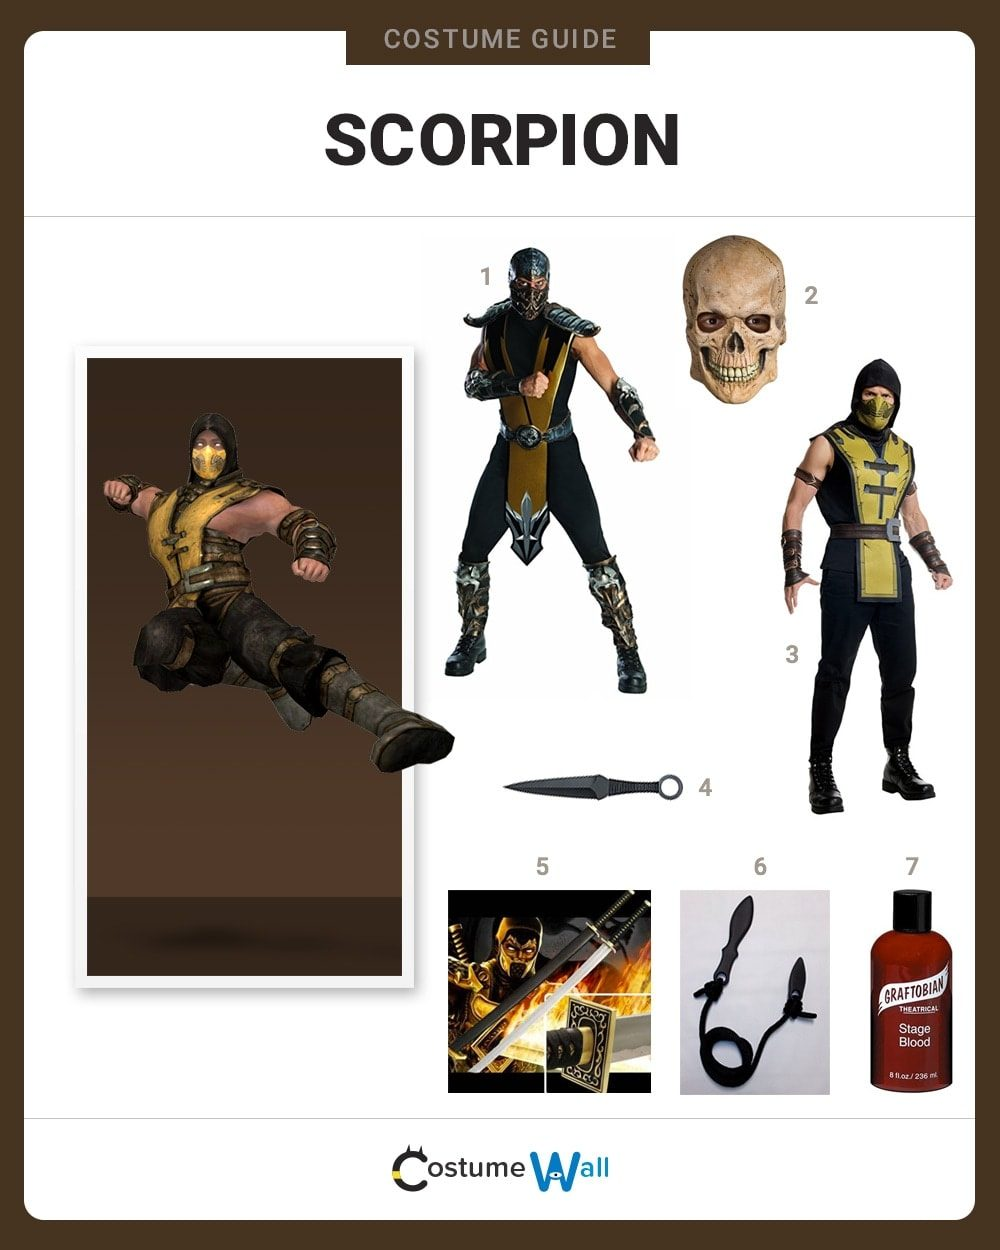 scorpion costume guide